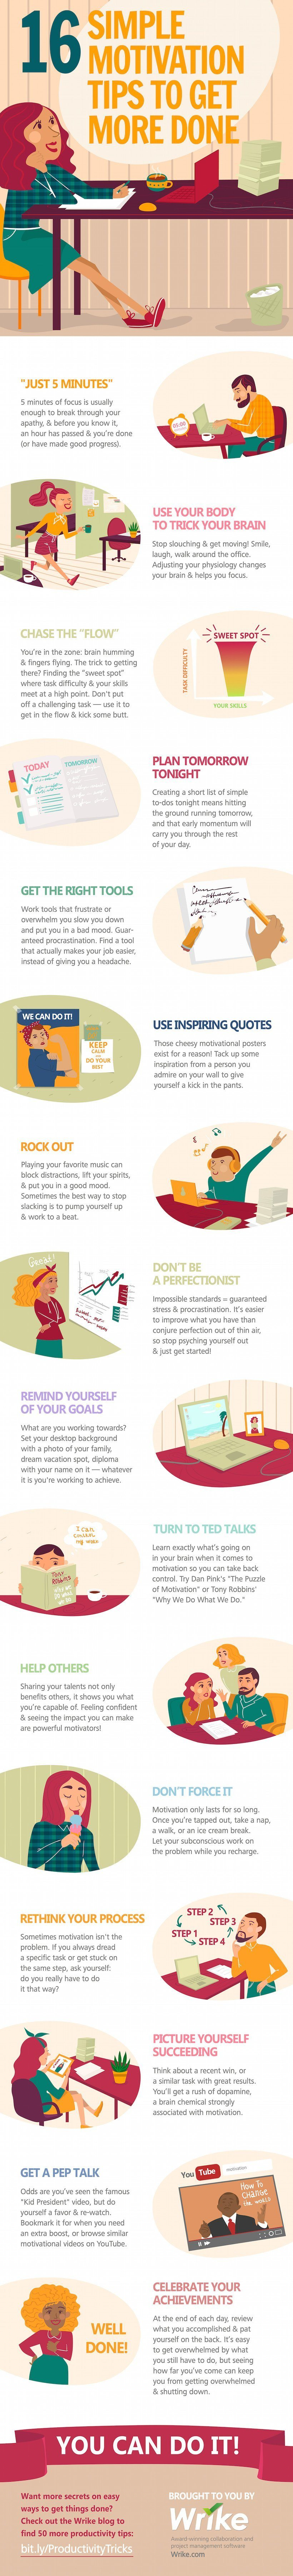 Motivation Tips I use to help me with my eLearning course creativity